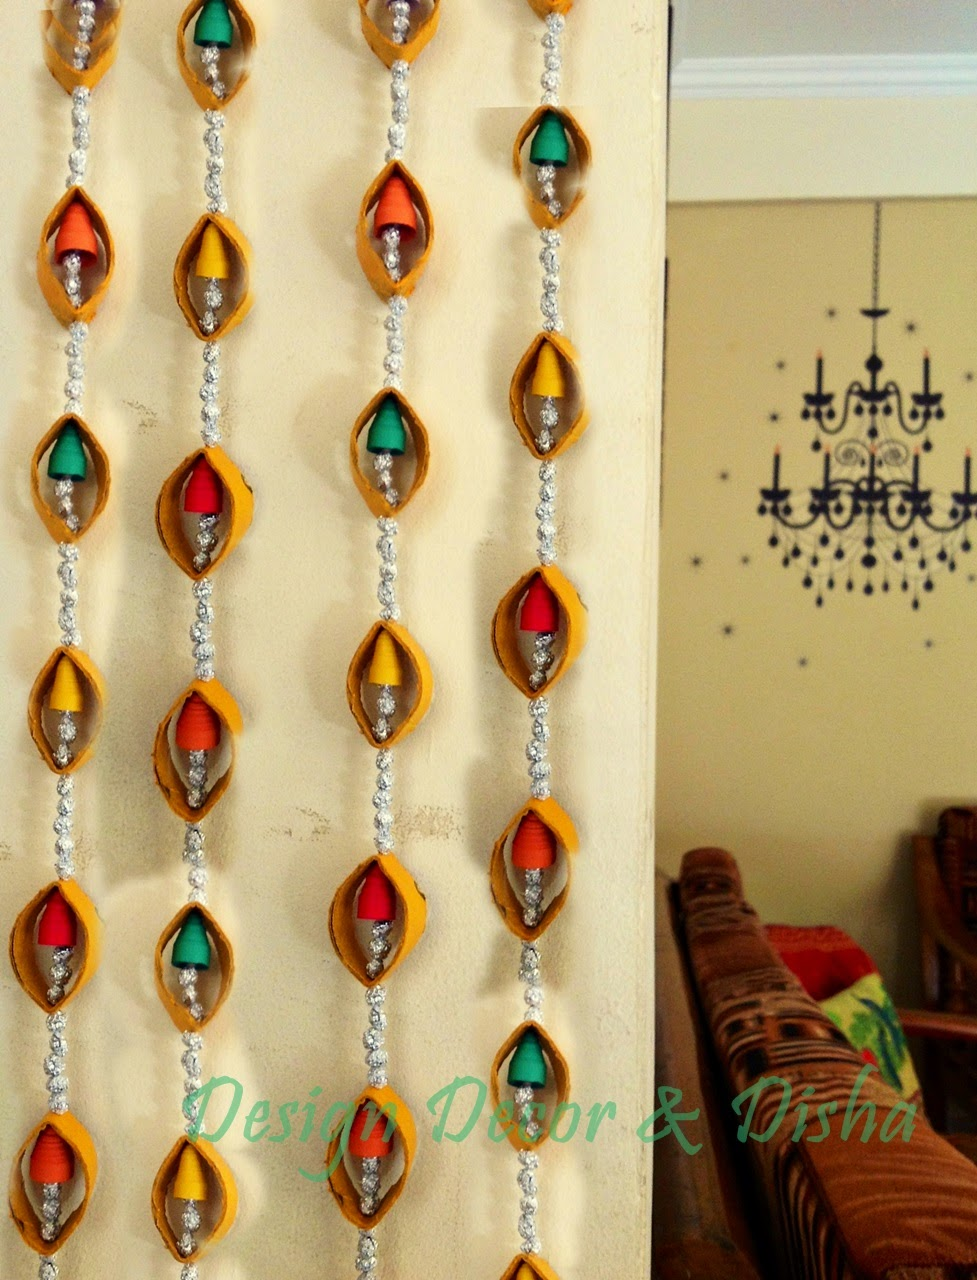 Design decor disha an indian design decor blog diy for Art and craft for decoration